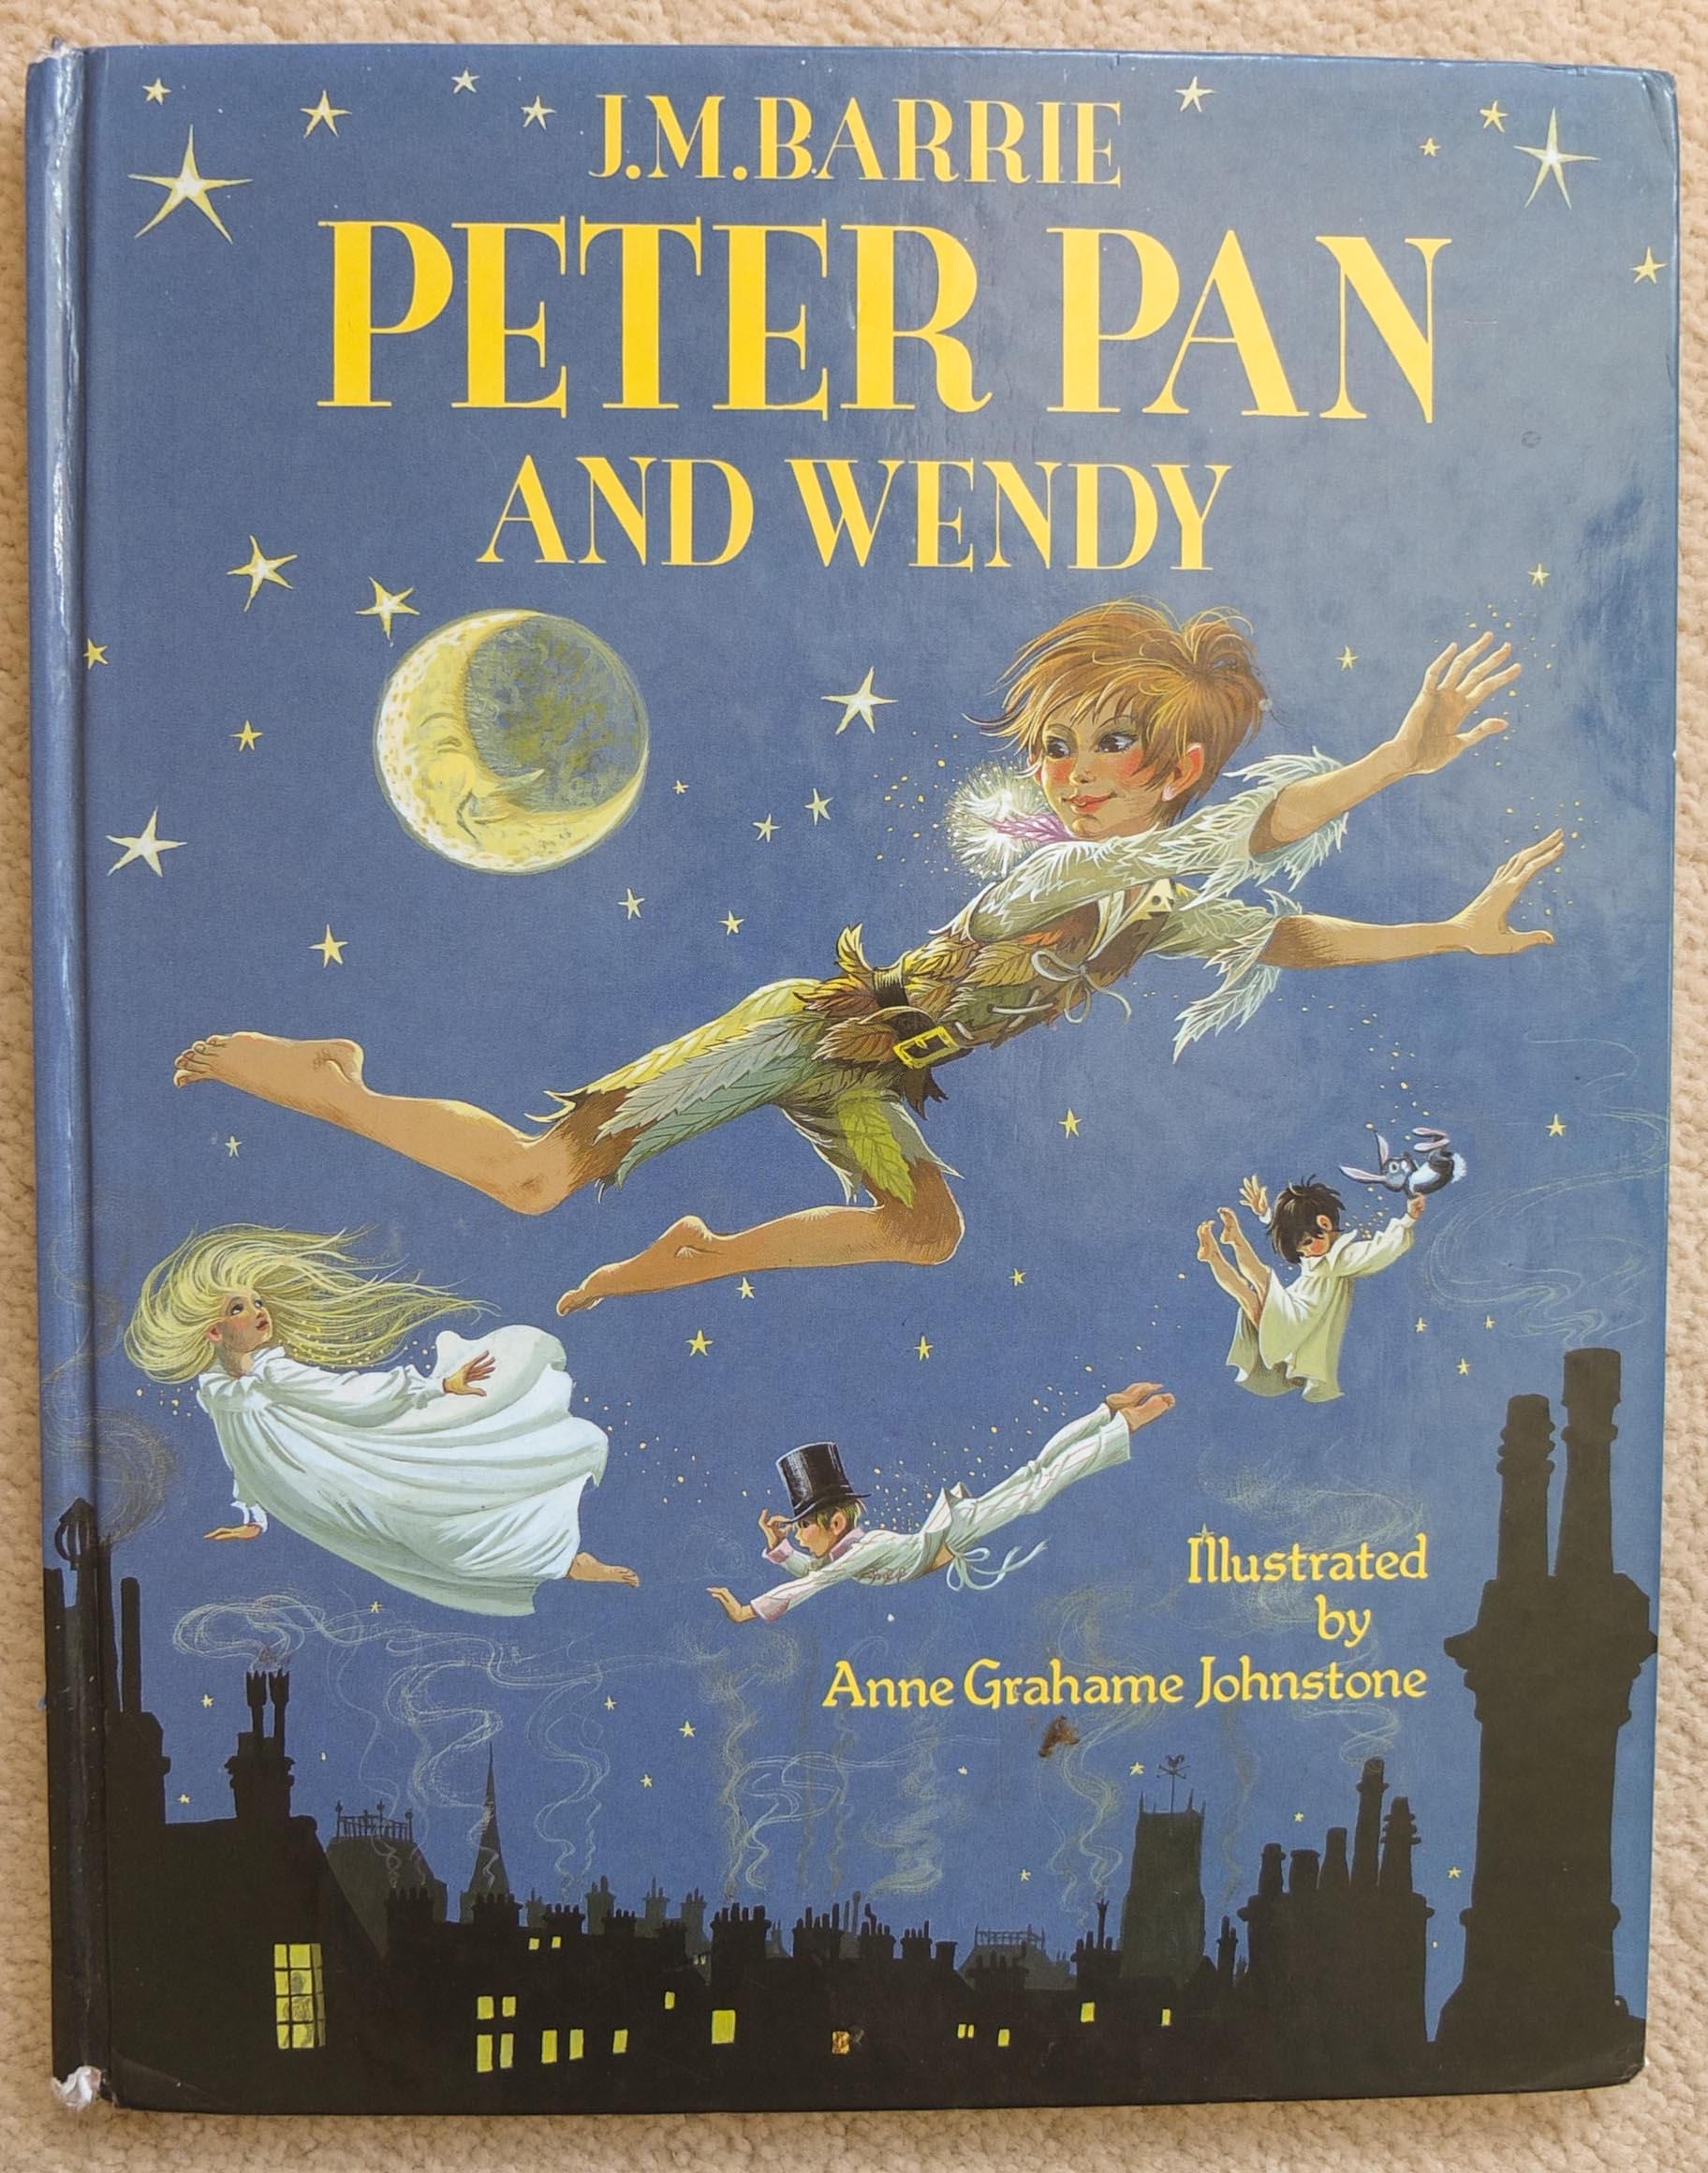 Peter Pan Libro Original Janet And Anne Grahame Johnstone Three Wishes Books